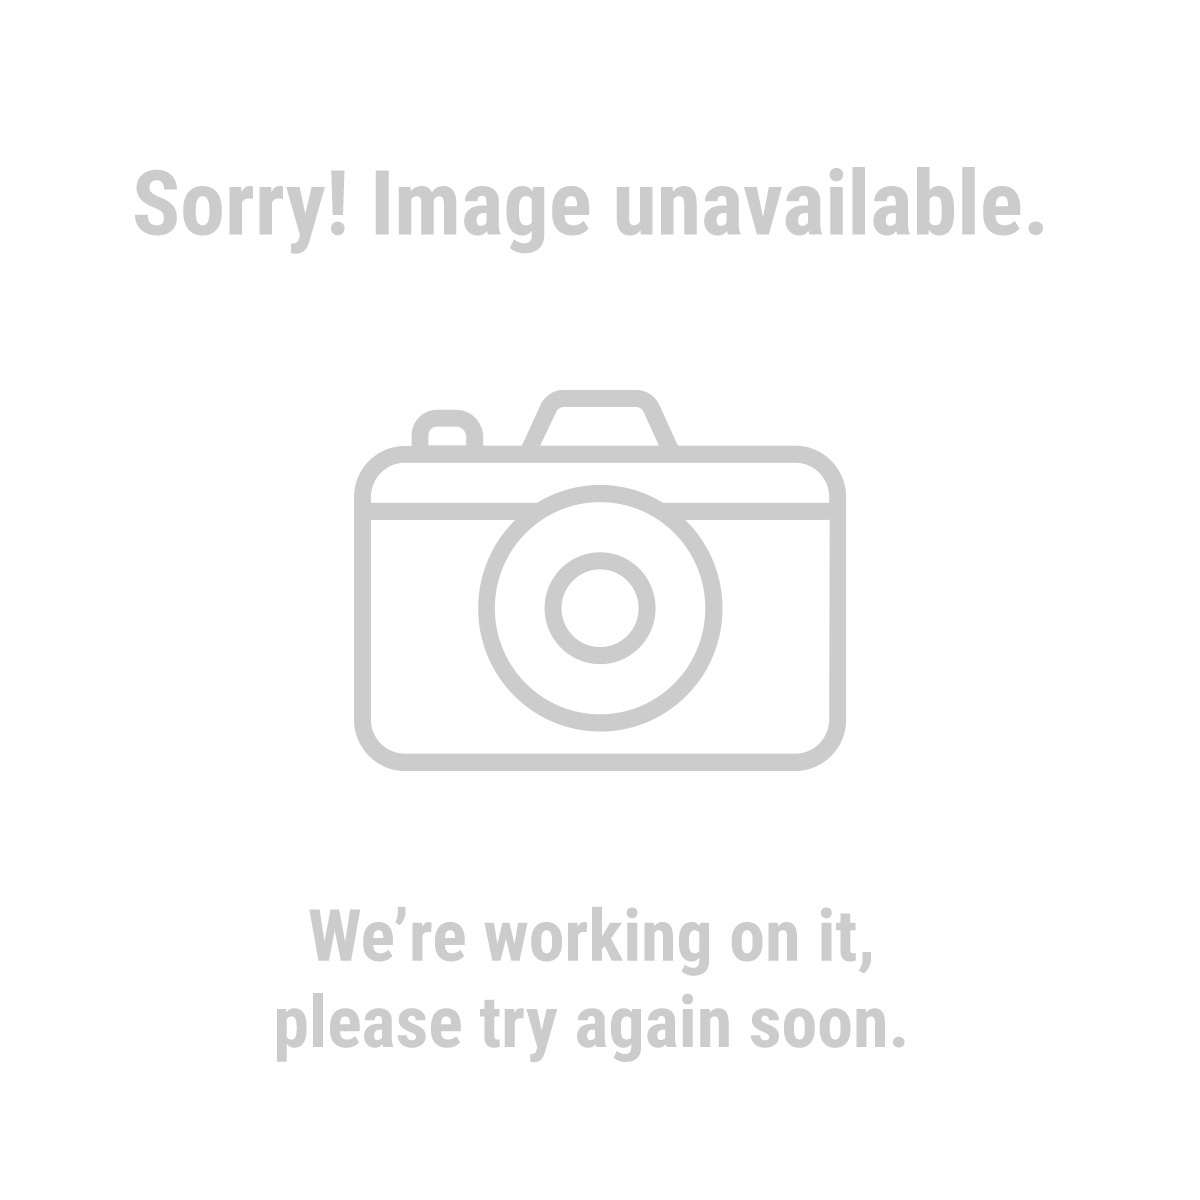 home depot garden club register with Router Table With Router 95380 on 202585898 besides 204239391 likewise Double Garage Door Screen 68310 moreover SPC BRD KI HBCabi s likewise Router Table With Router 95380.